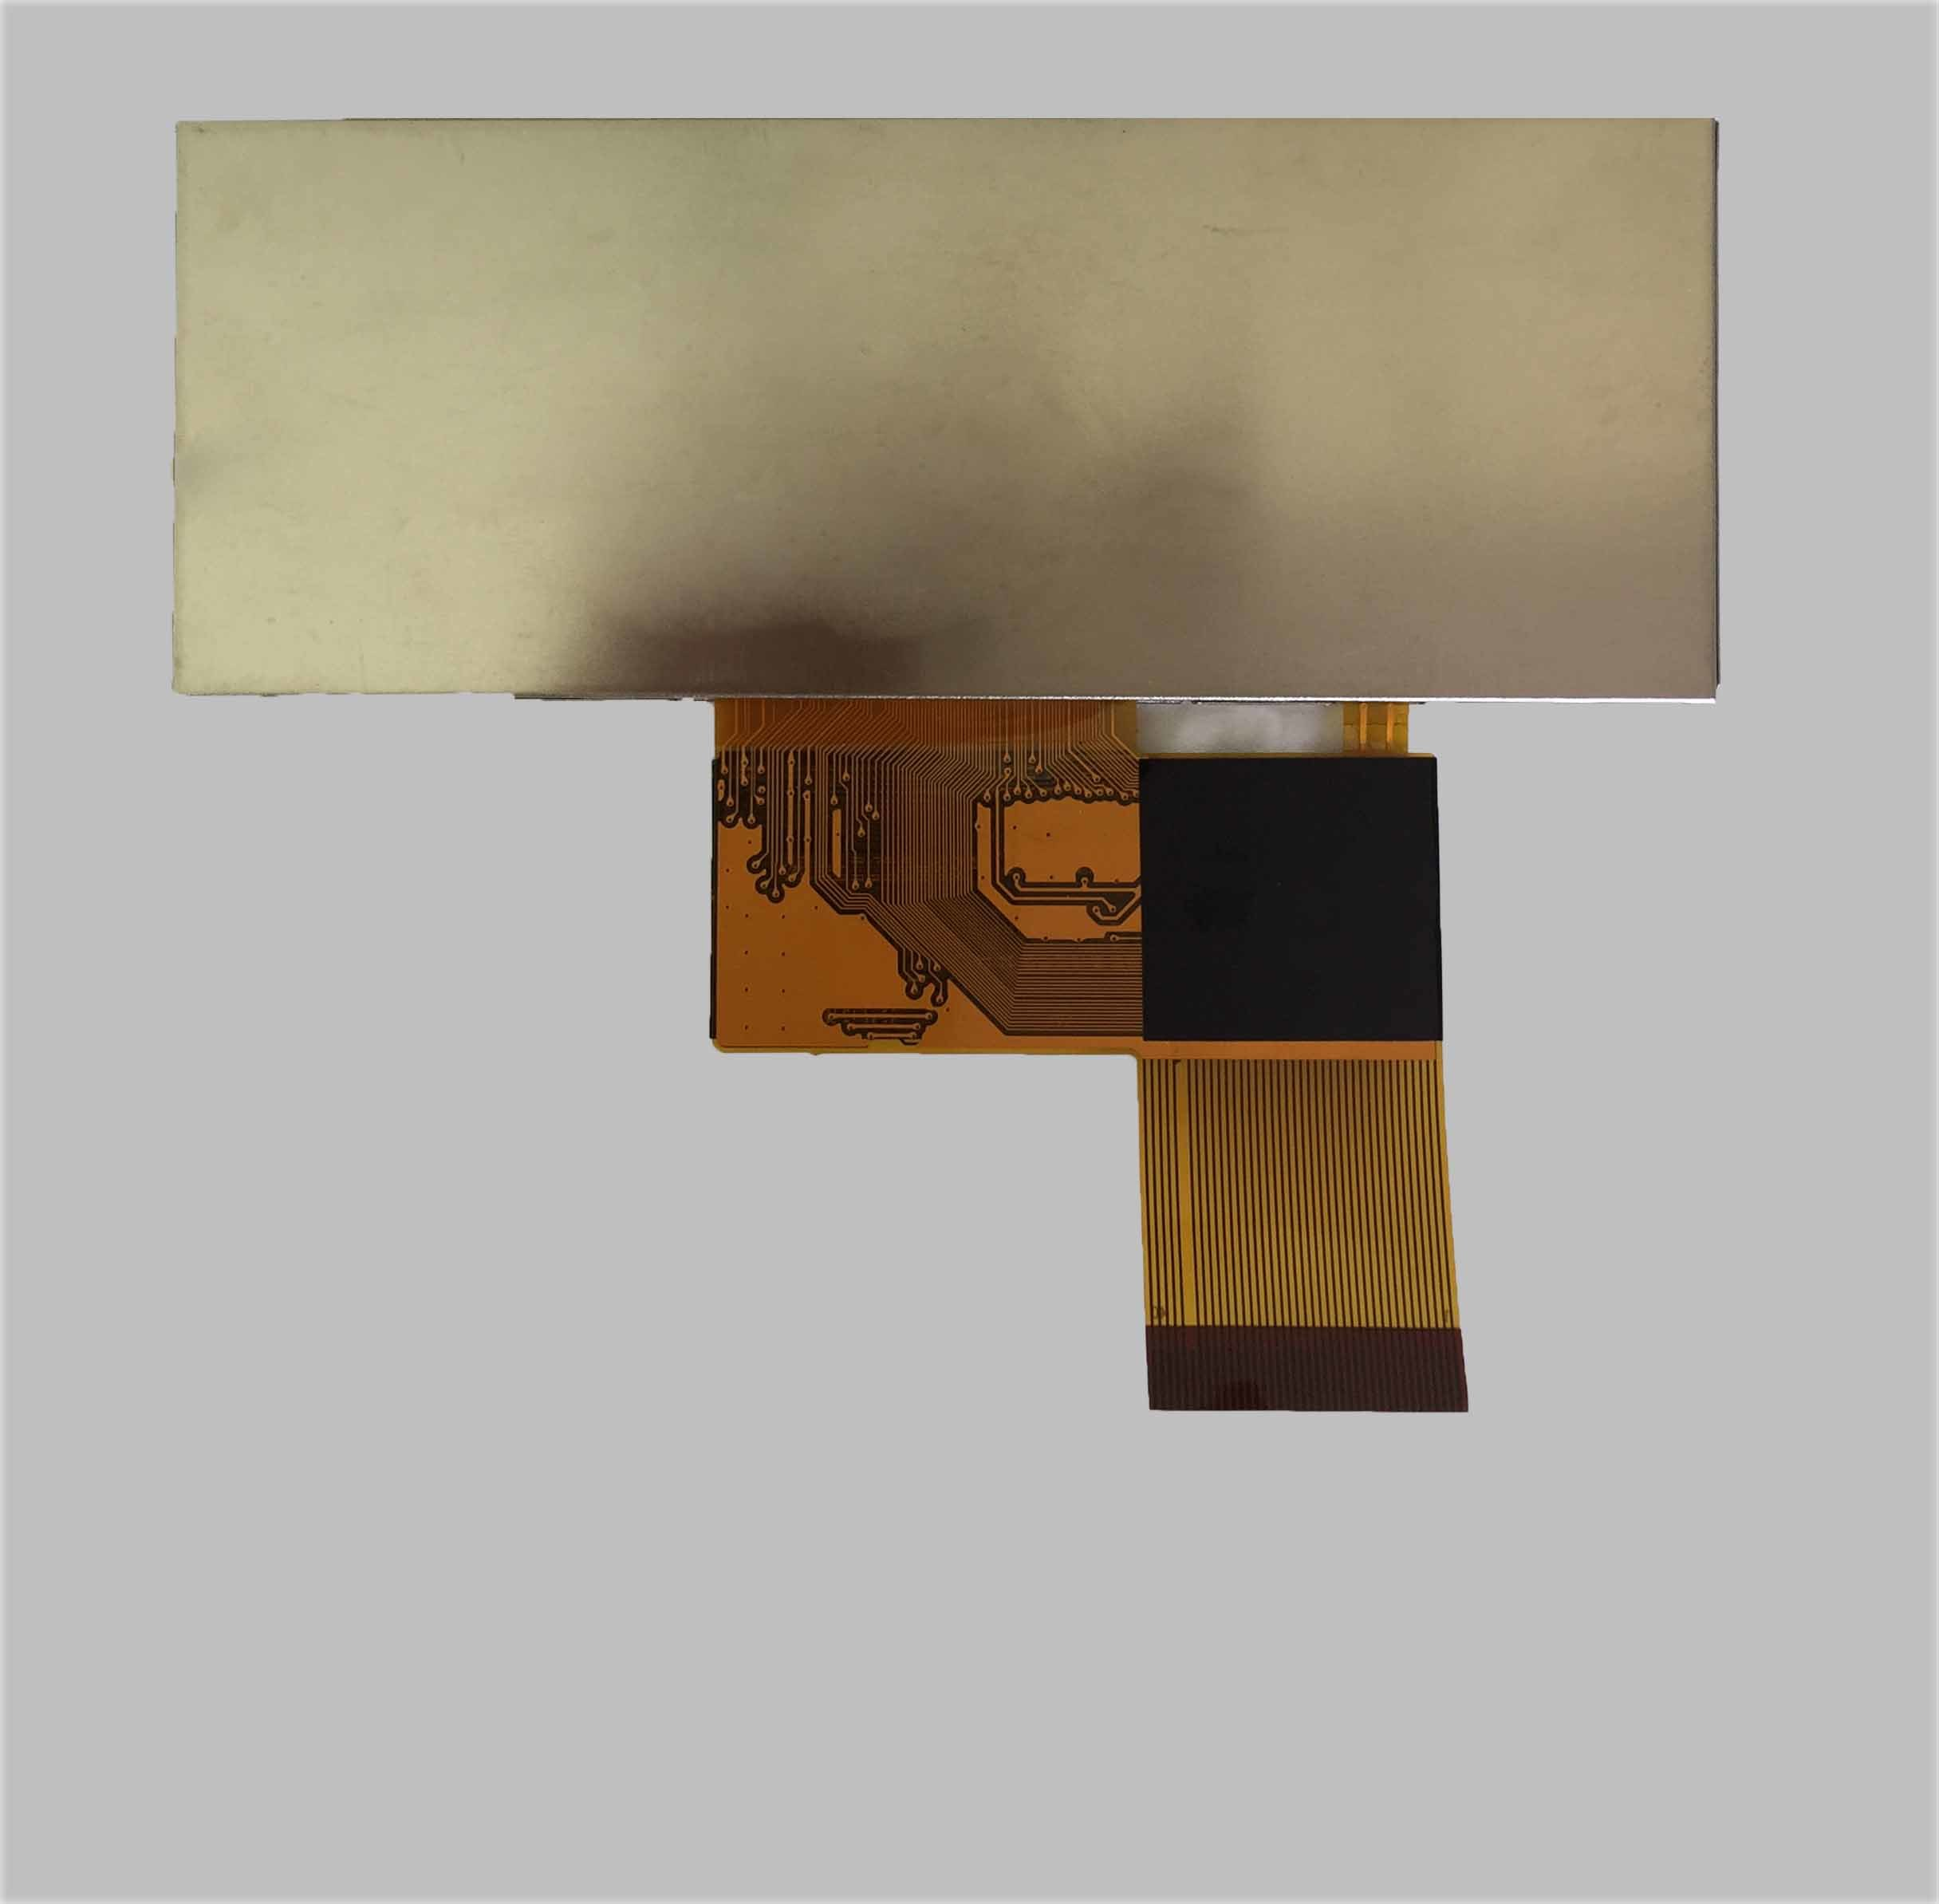 3.9 Inch Bar Type TFT LCD Display Module Supper Wide Stretched